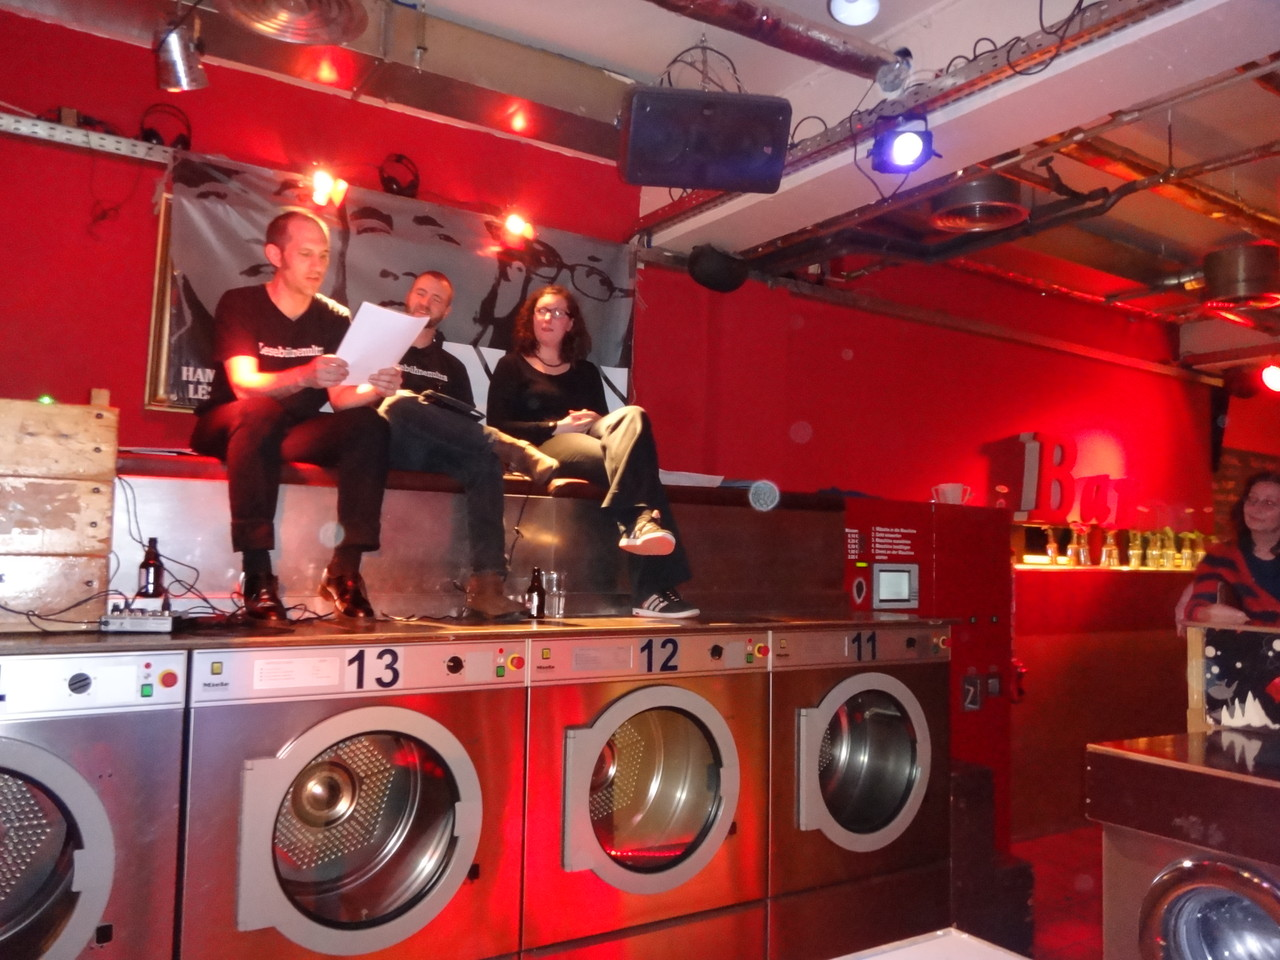 Längs in der Laundrette